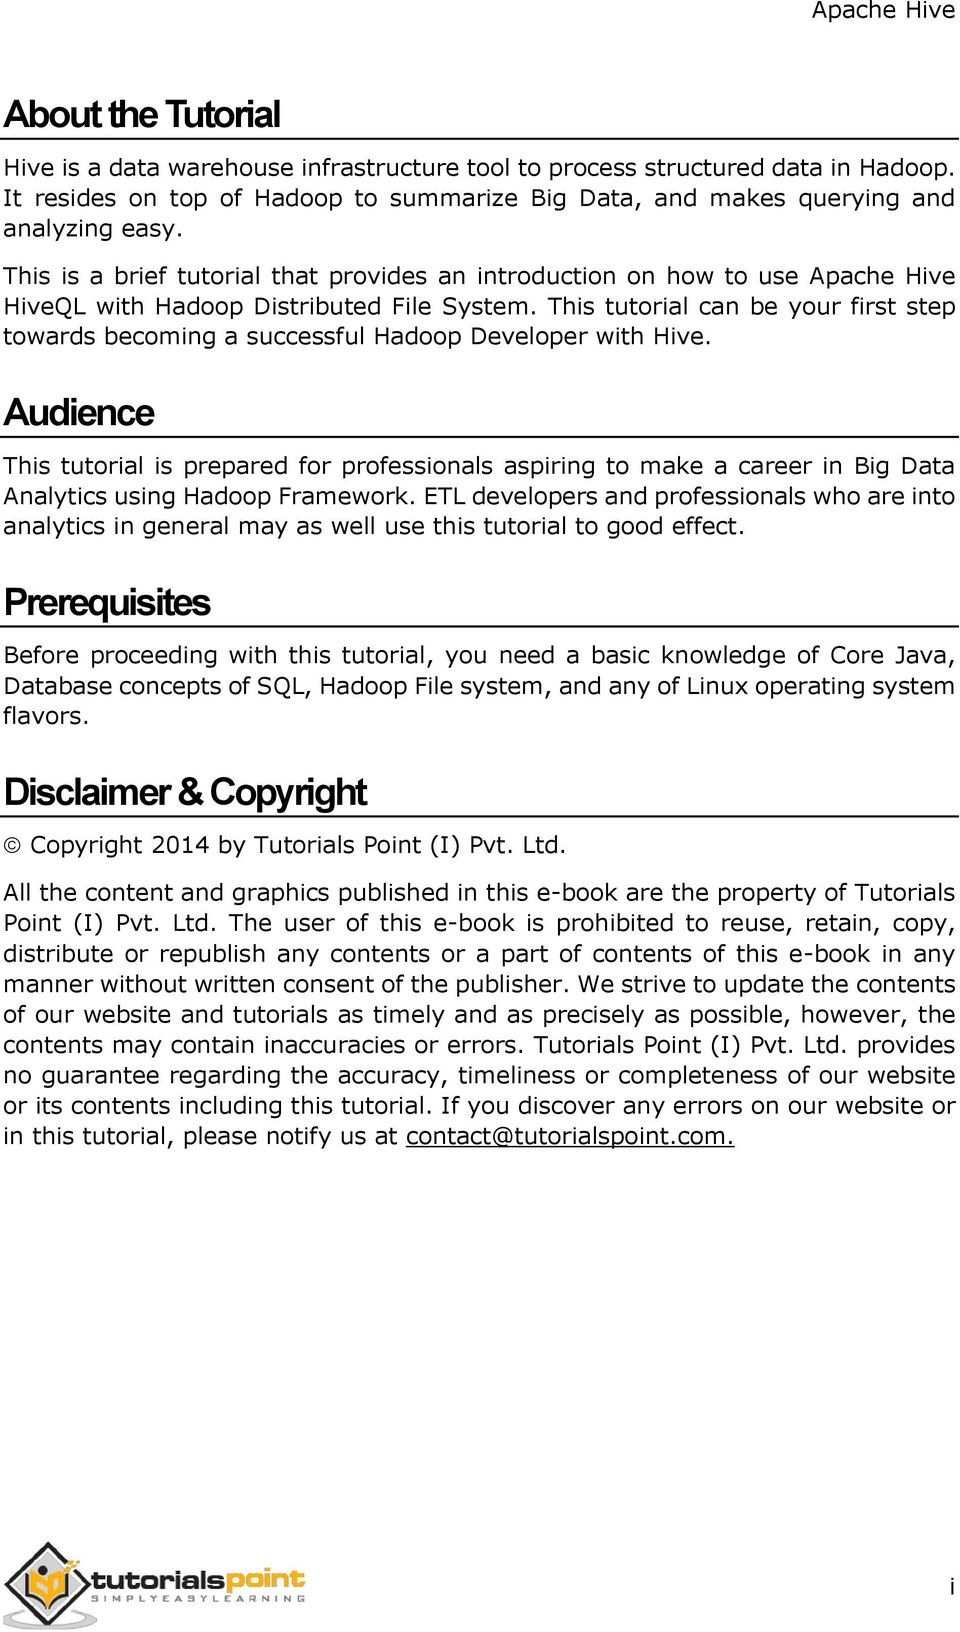 about the tutorial. audience. prerequisites. disclaimer & copyright